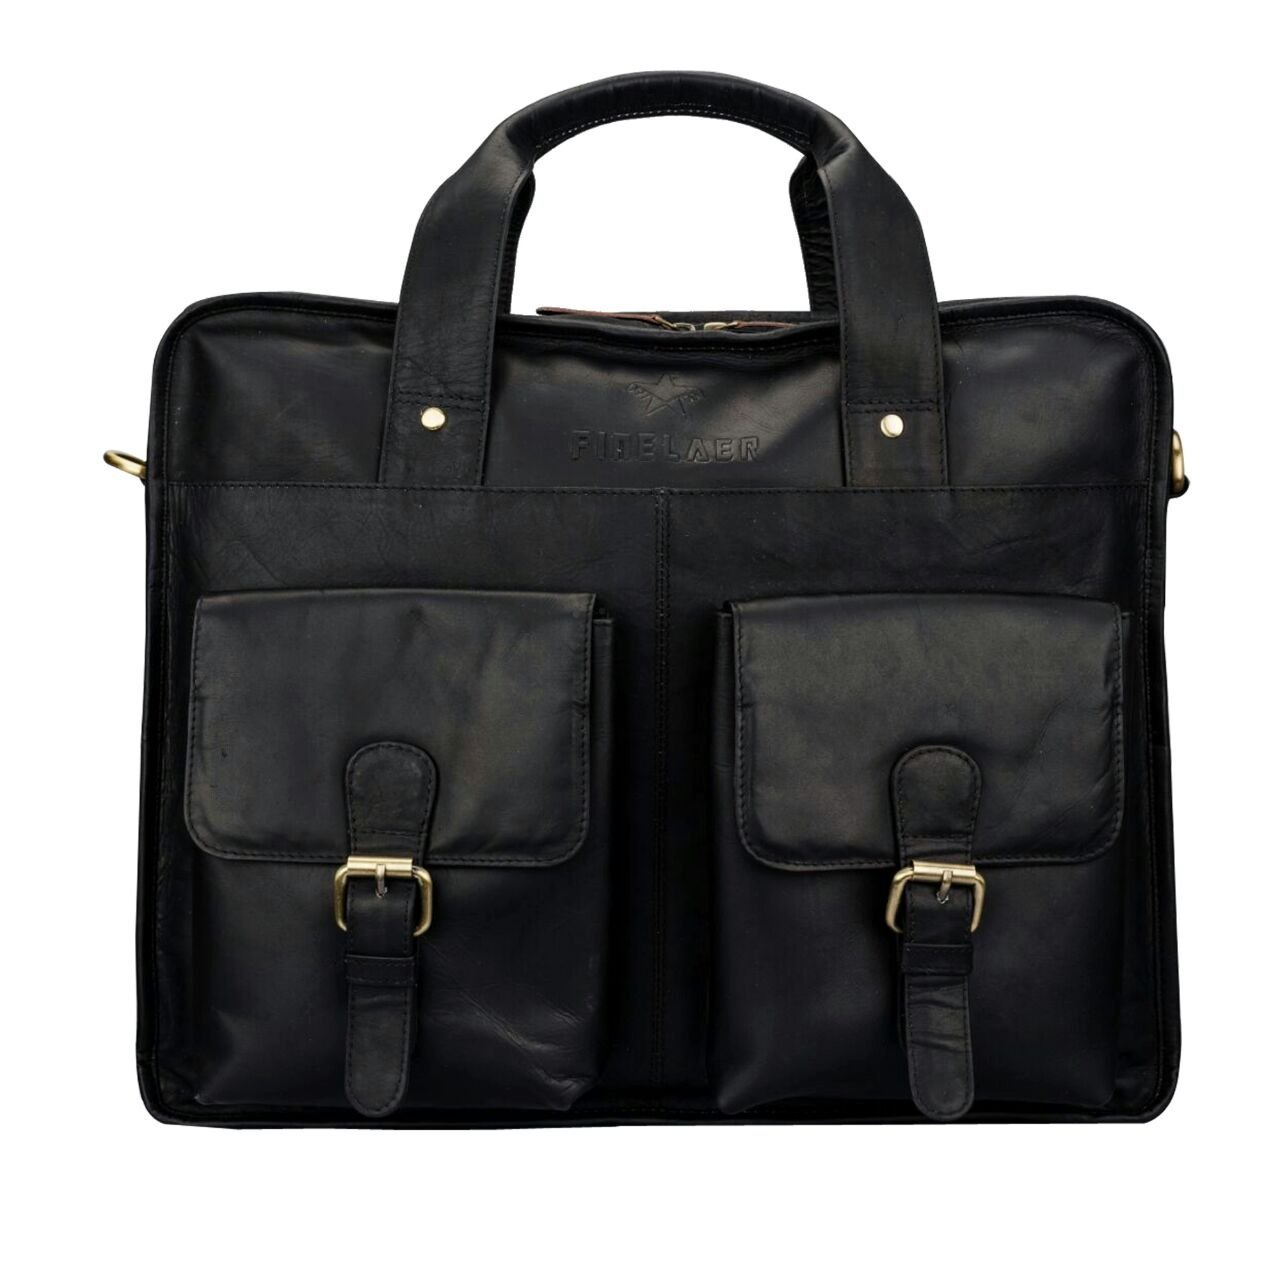 Finelaer Leather Laptop Computer Messenger Bag with Pockets for laptops Macbooks 14'' Black by FINELAER (Image #1)